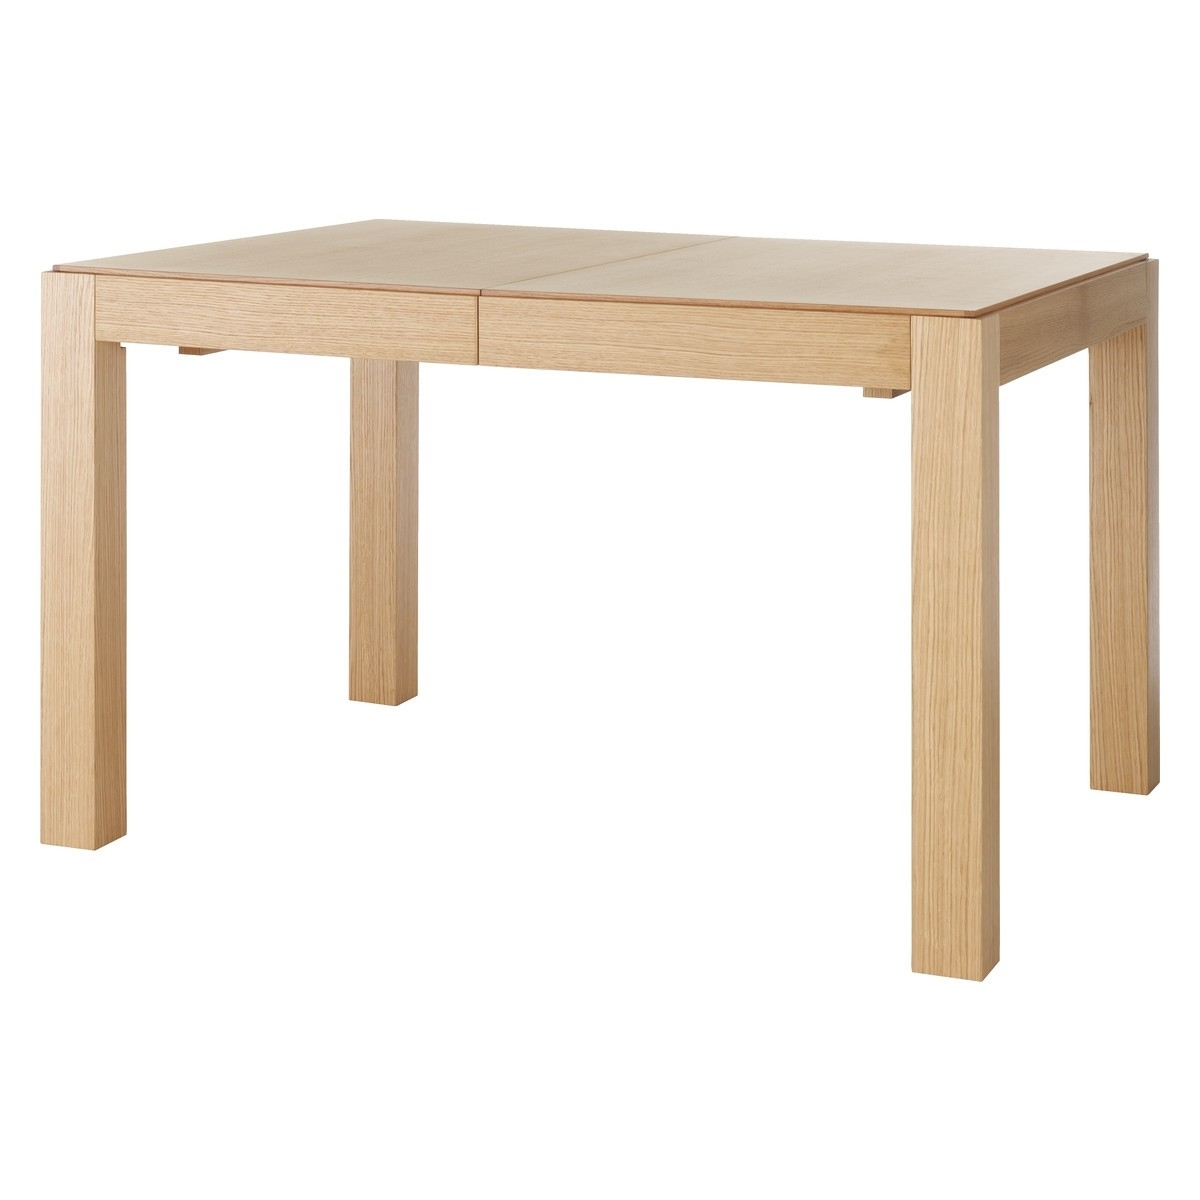 Extending Oak Dining Tables Pertaining To Preferred Drio 4 10 Seat Oak Extending Dining Table (View 14 of 25)